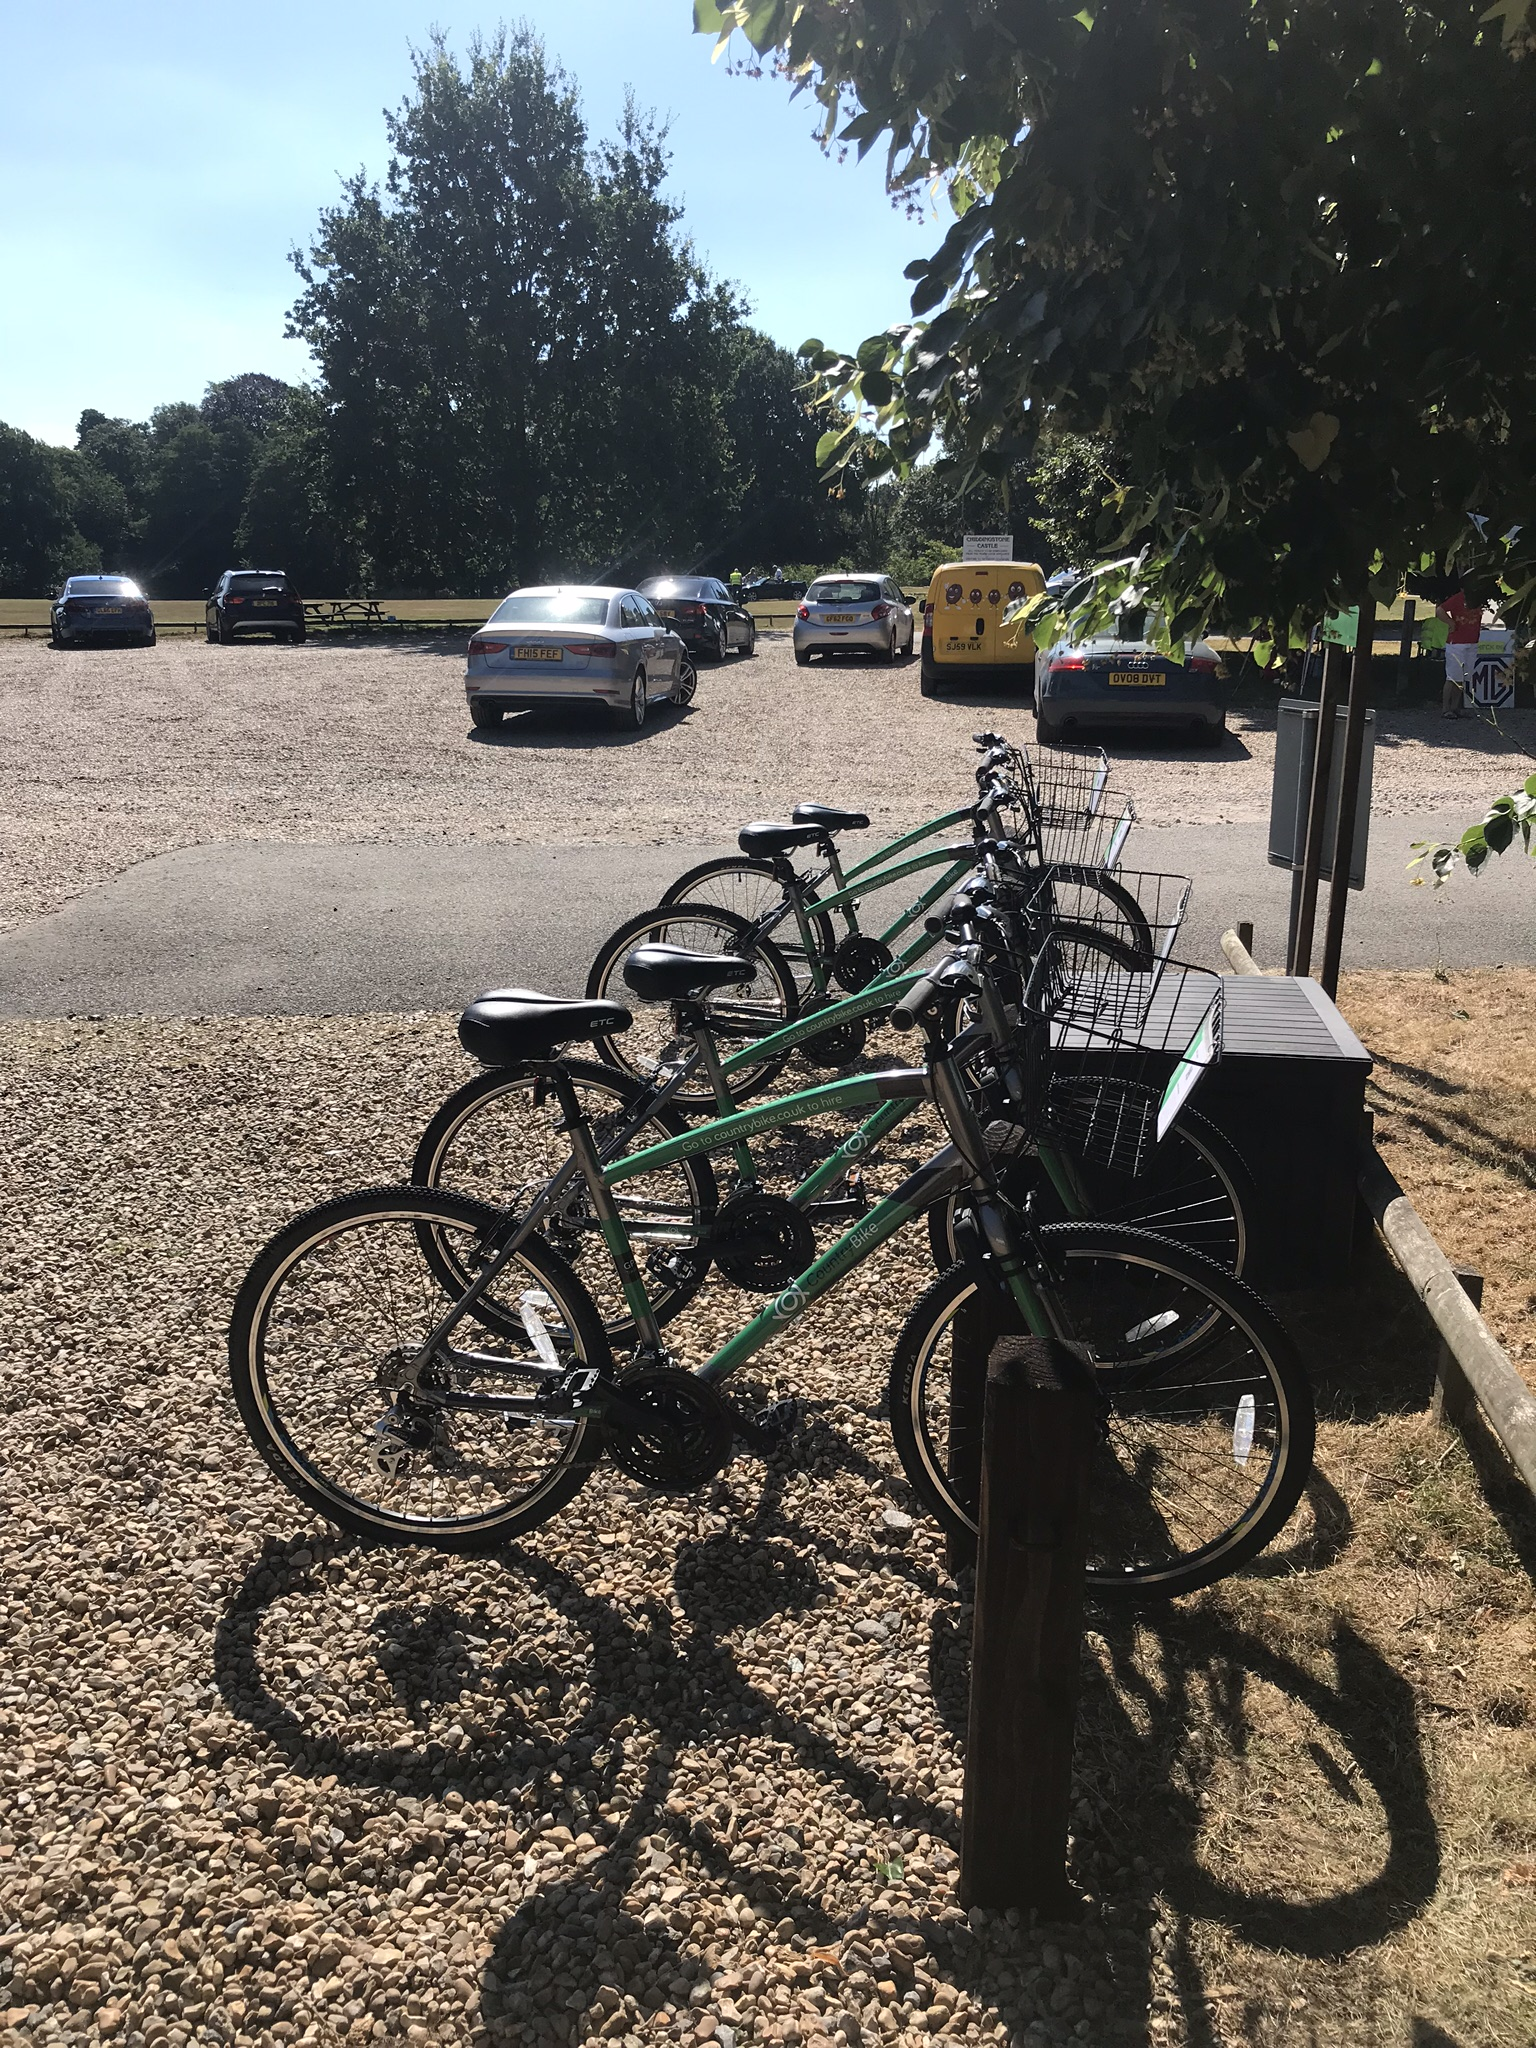 Image of bikes at Chiddingstone Castle